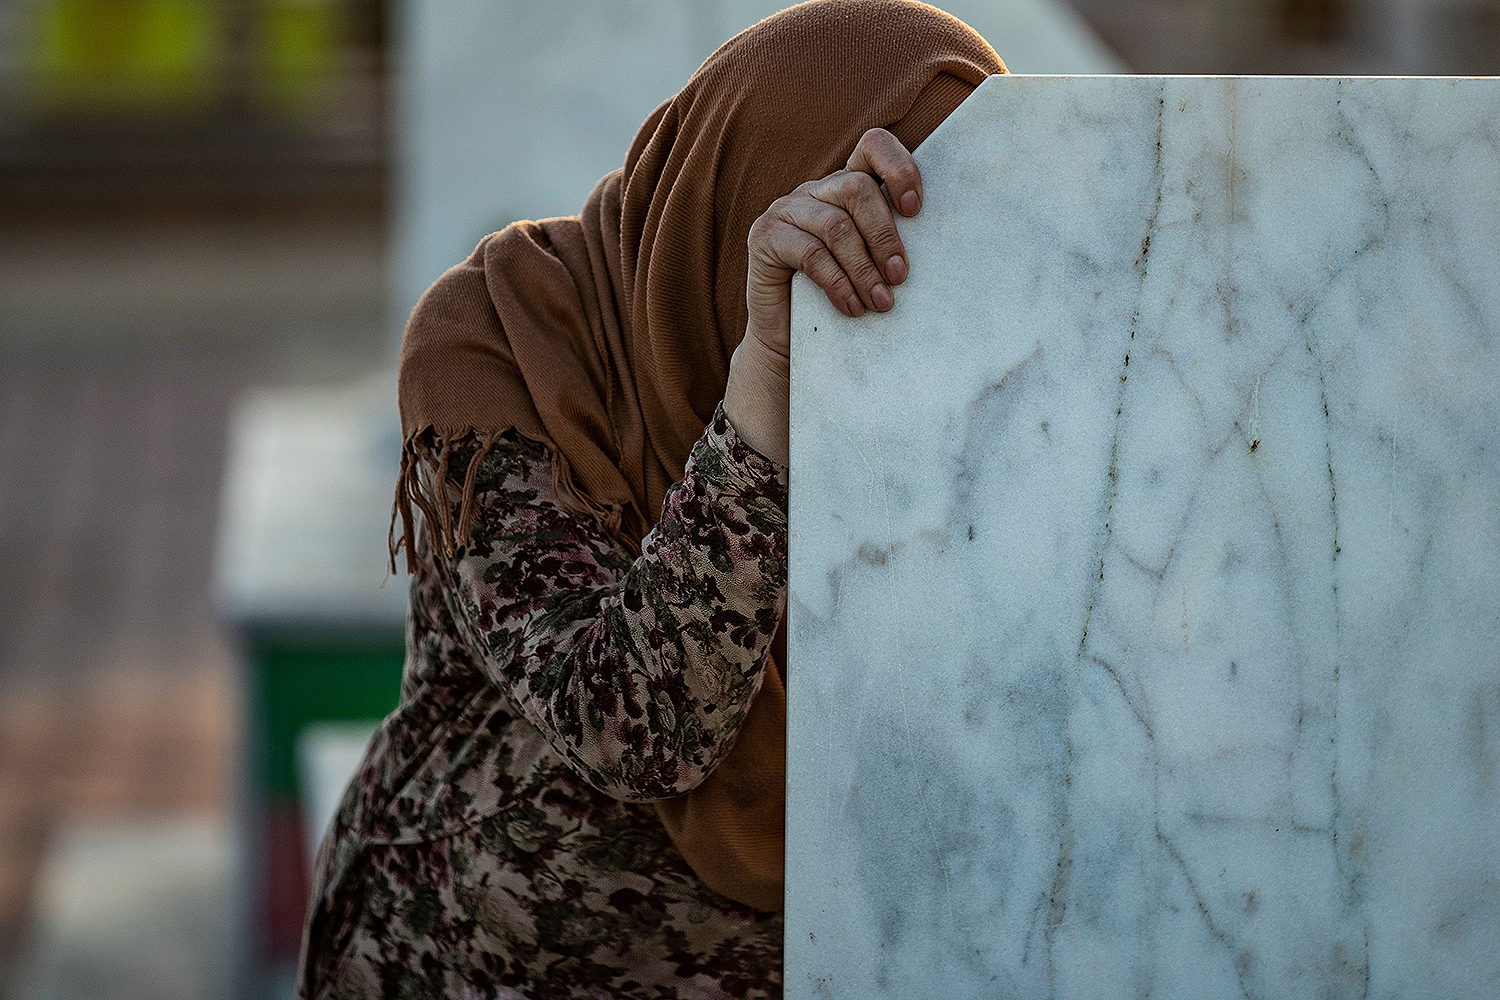 A relative of a slain Kurdish fighter with the Syrian Democratic Forces visits his tomb at a cemetery in the Kurdish-majority city of Qamishli, Syria, on July 30. DELIL SOULEIMAN/AFP via Getty Images